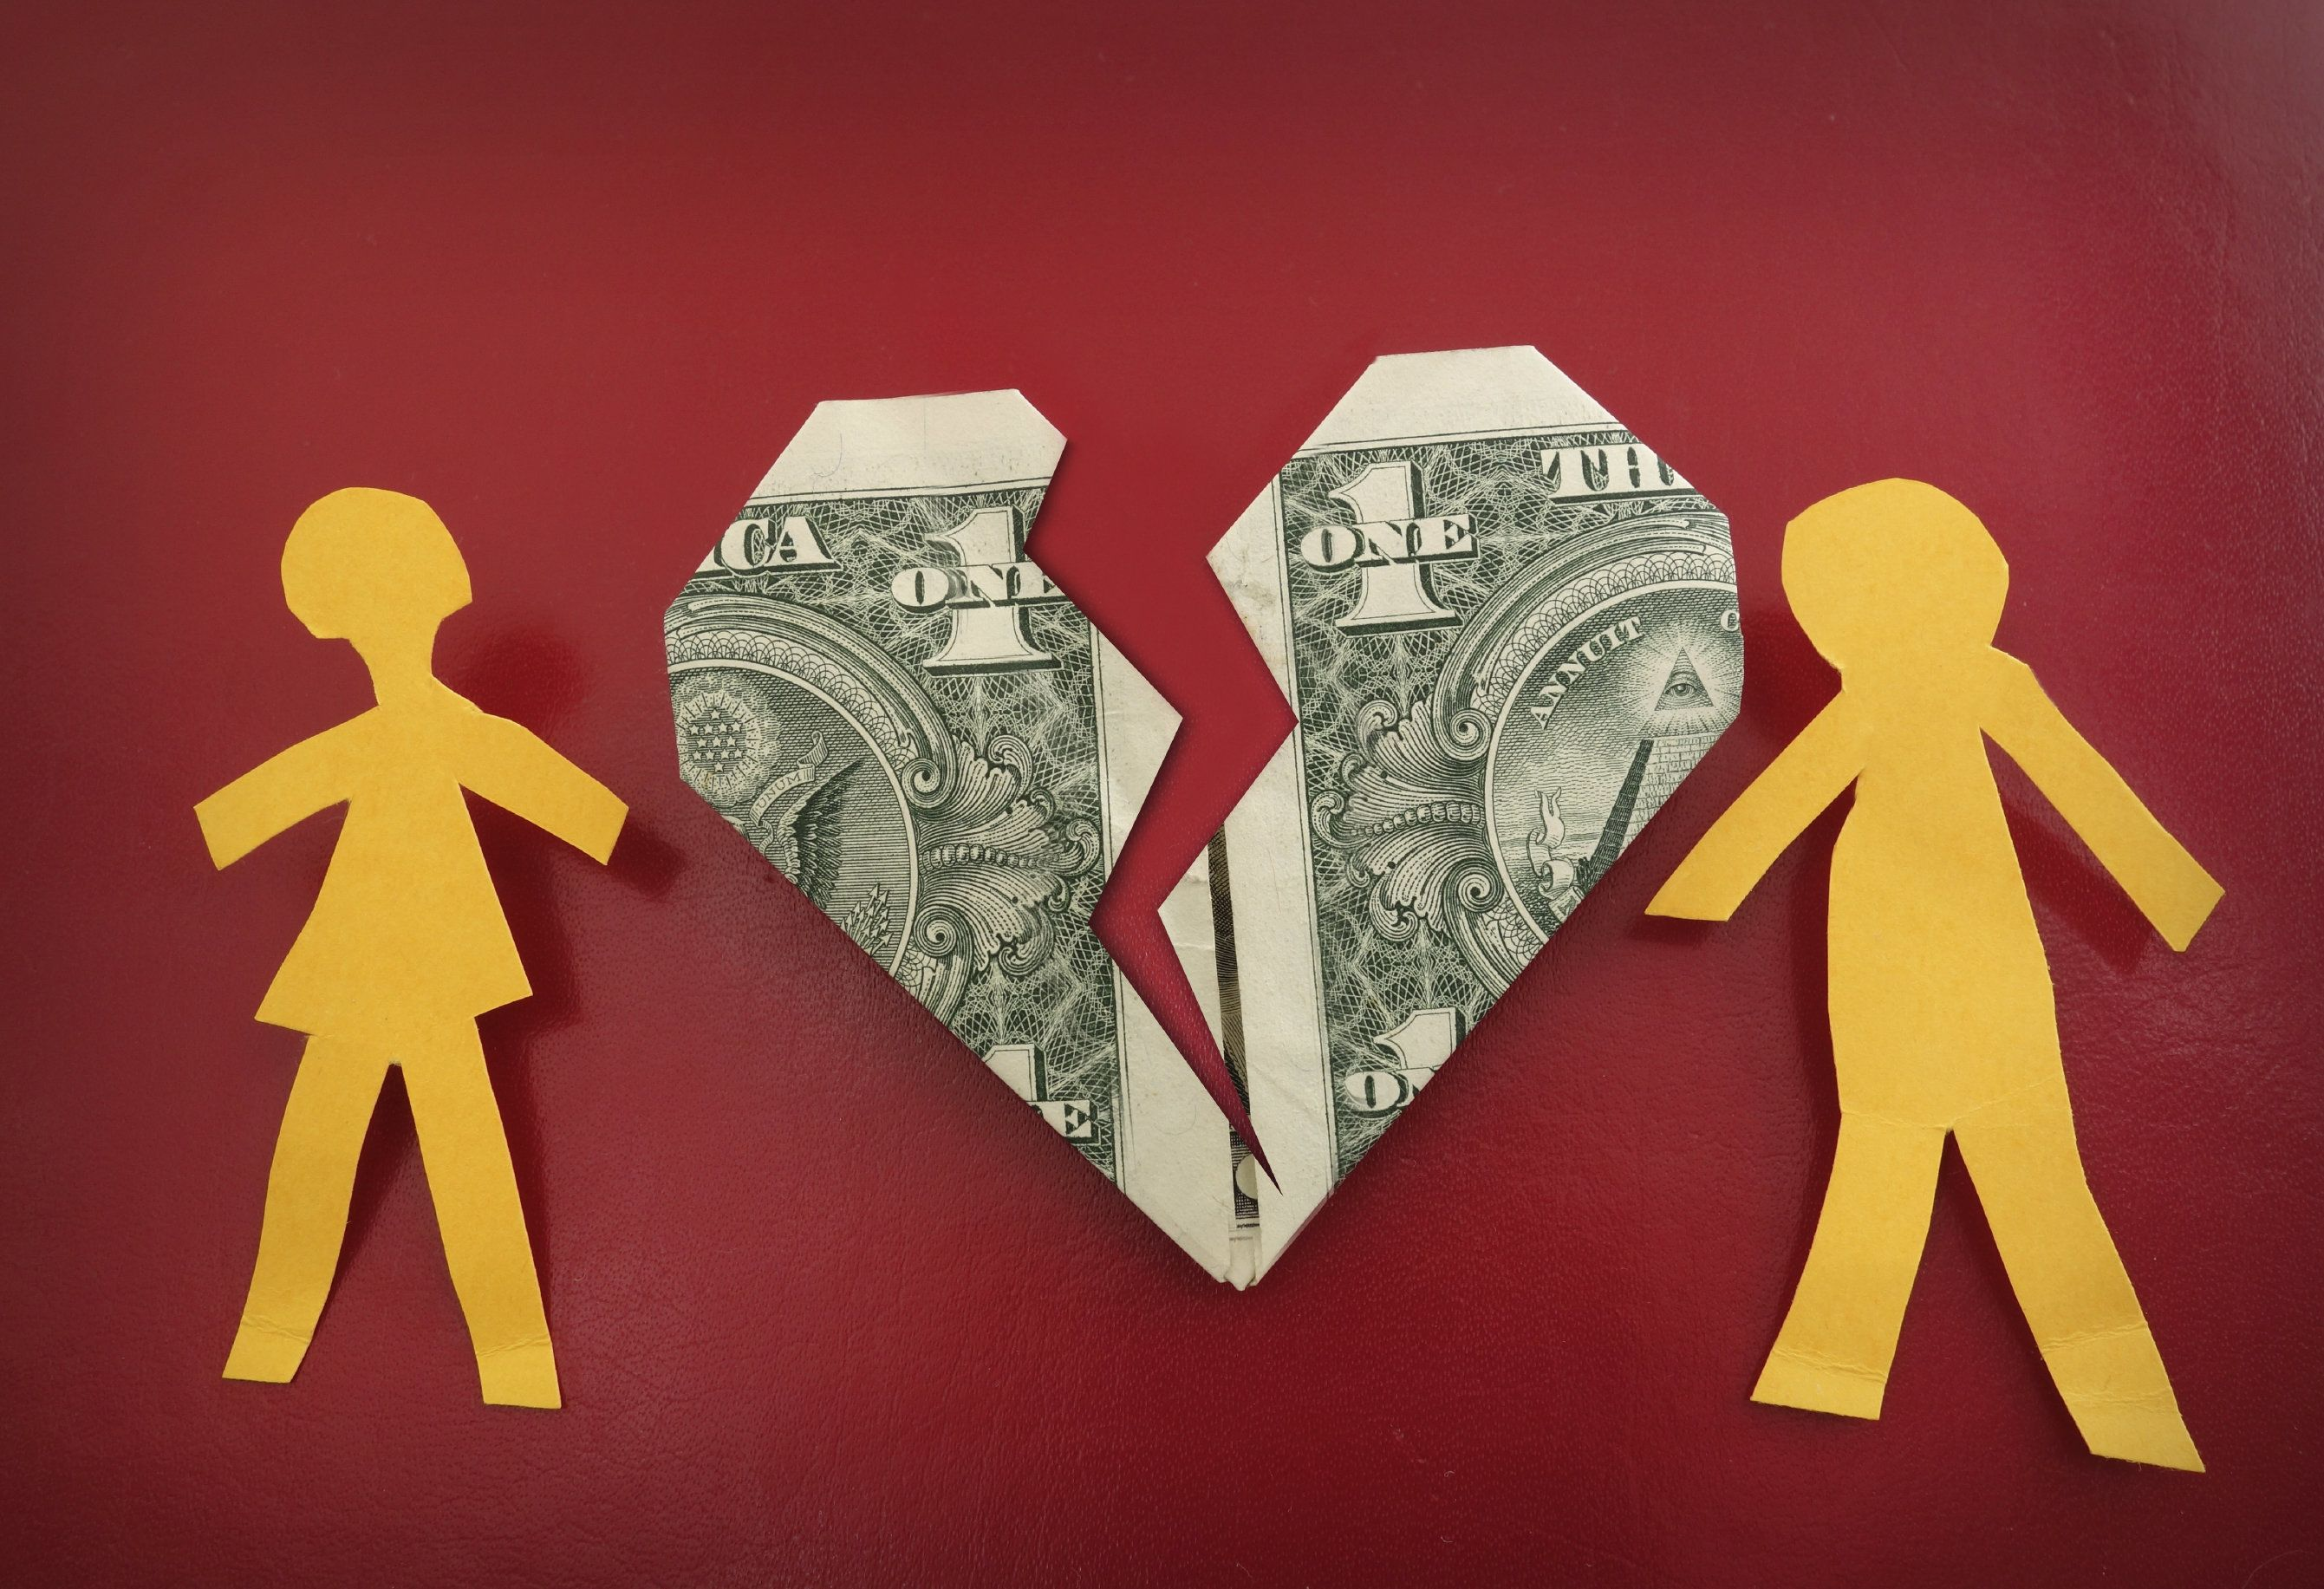 Cut out paper dolls and a dollar bill folded in the shape of a broken heart